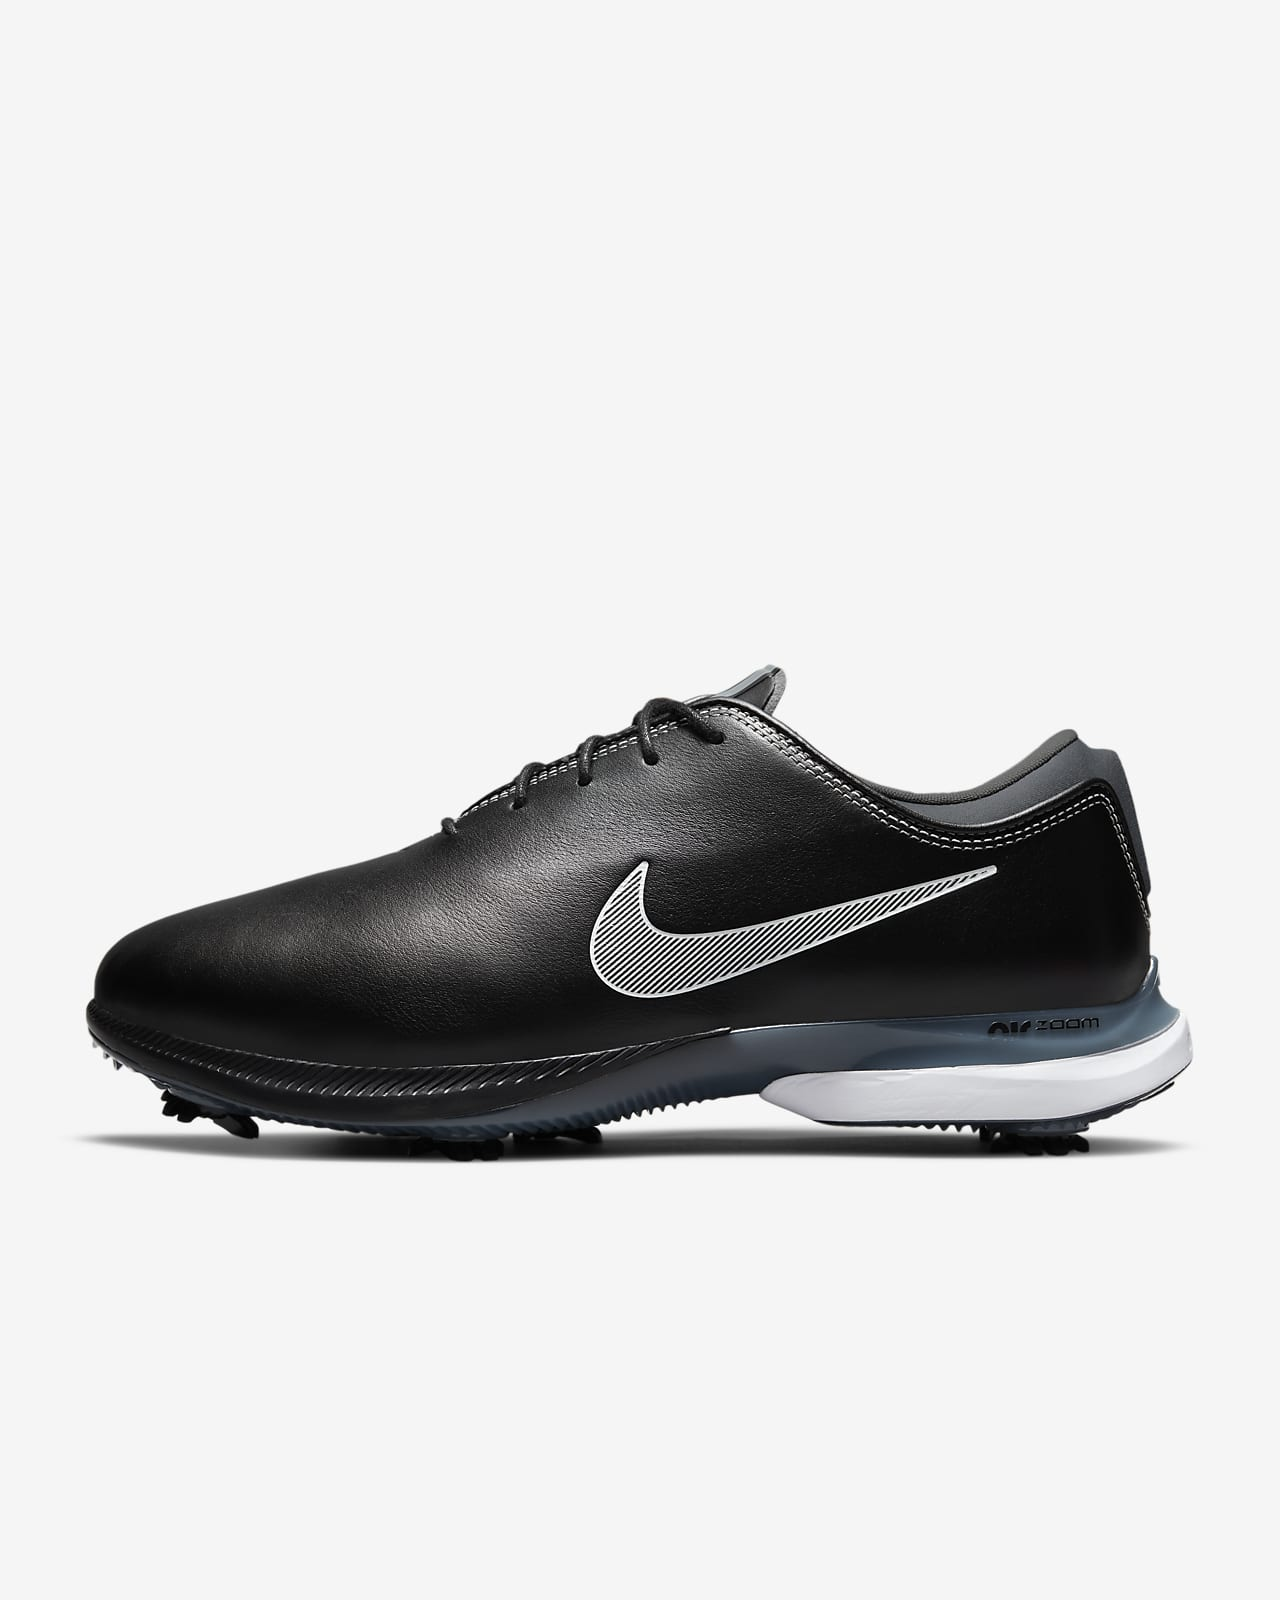 Nike Air Zoom Victory Tour 2 Golf Shoes (Wide)